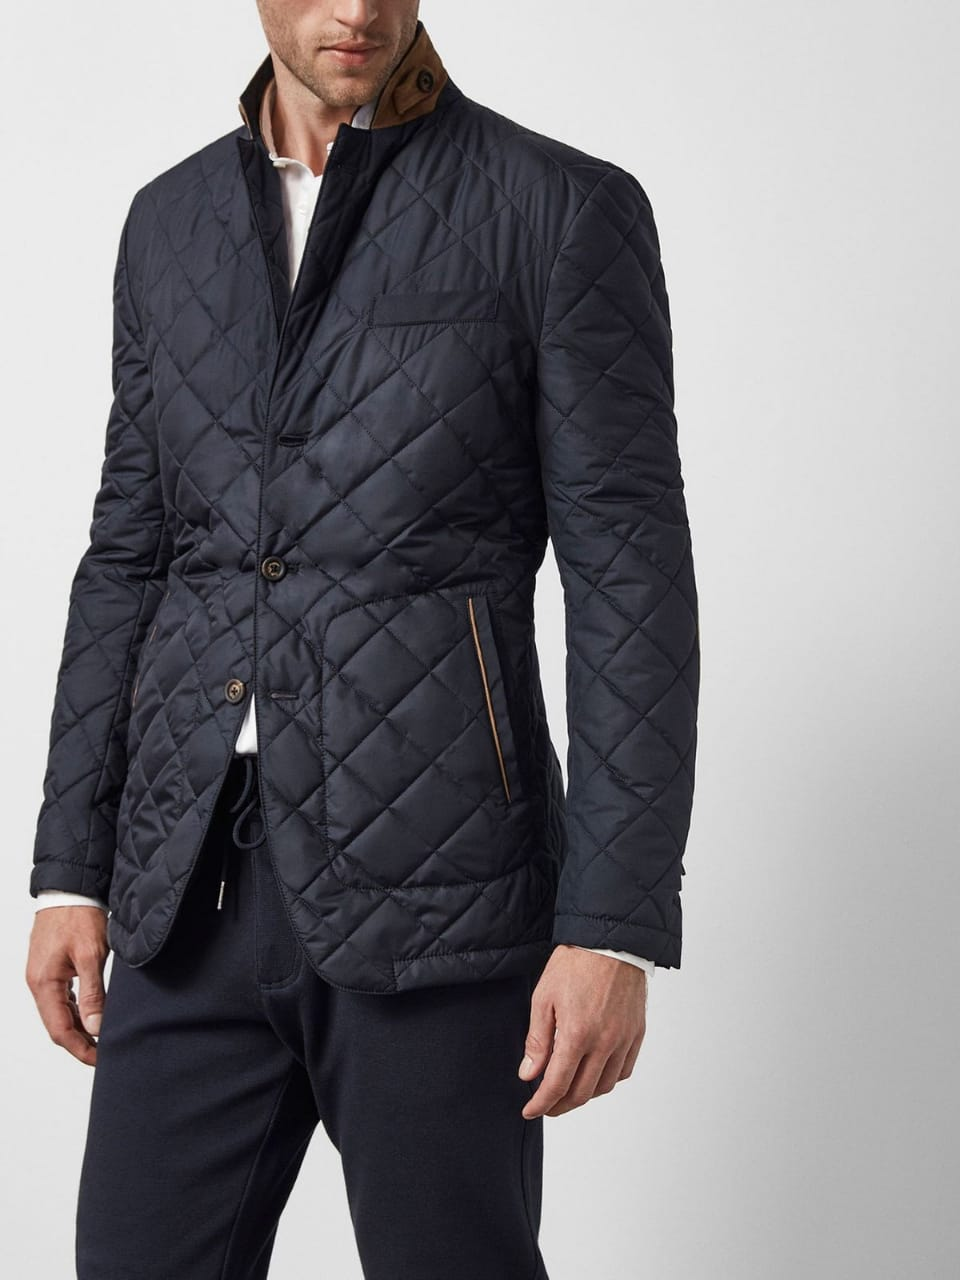 100% Polyester Coats And Jackets For Men Outwear